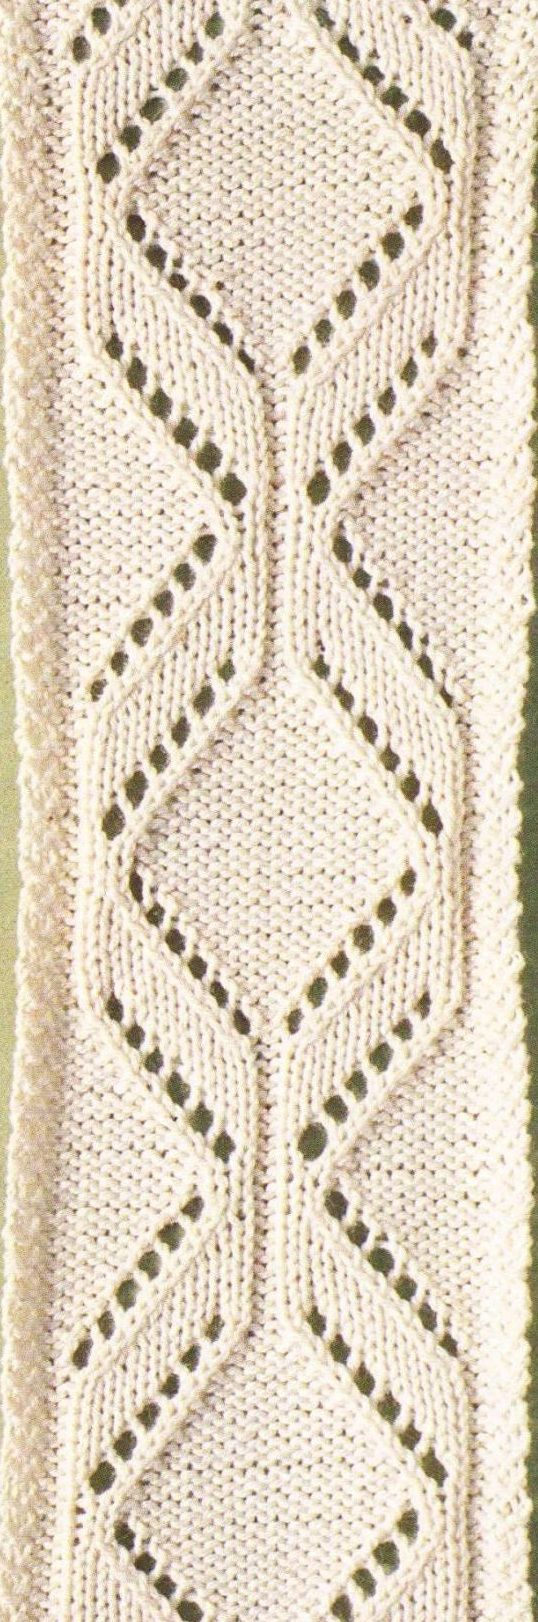 Best 25 lace knitting stitches ideas on pinterest lace knitting this chart uses russian knitting symbols here is a guide that can help you decipher it russian to english knit chart translation more patterns like bankloansurffo Choice Image